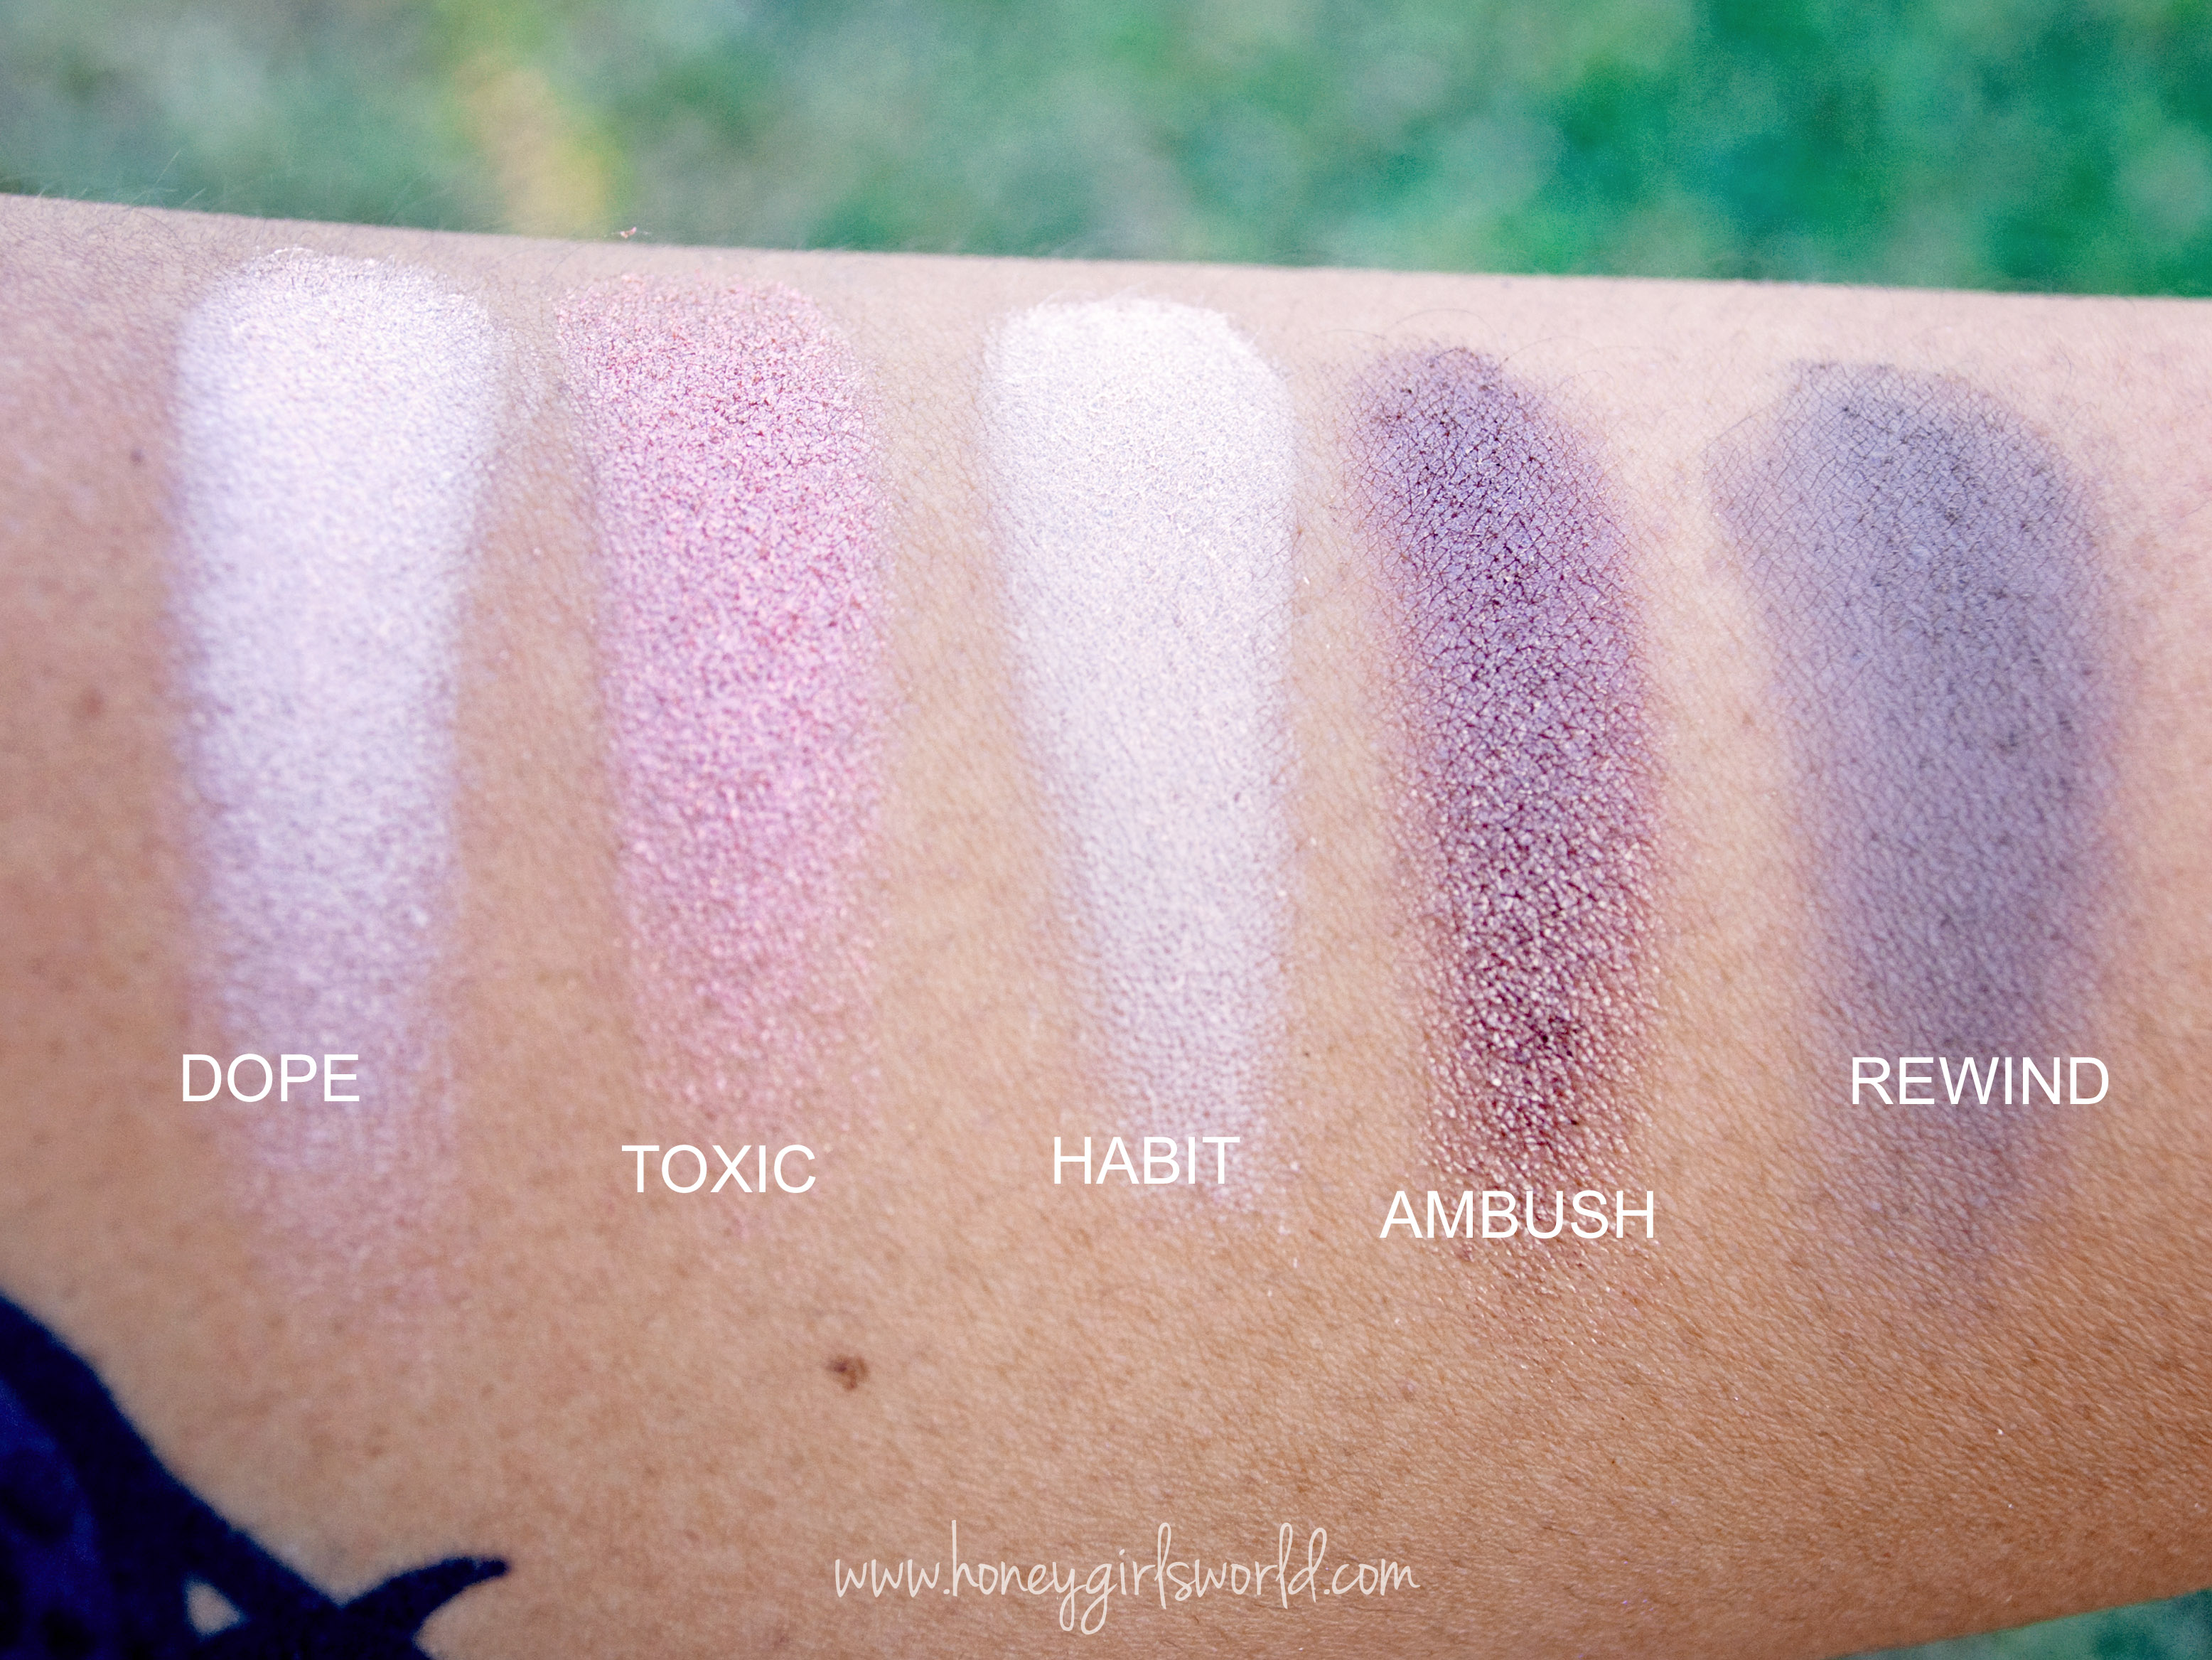 Urban Decay Vice 2 Palette Swatches - 4th row